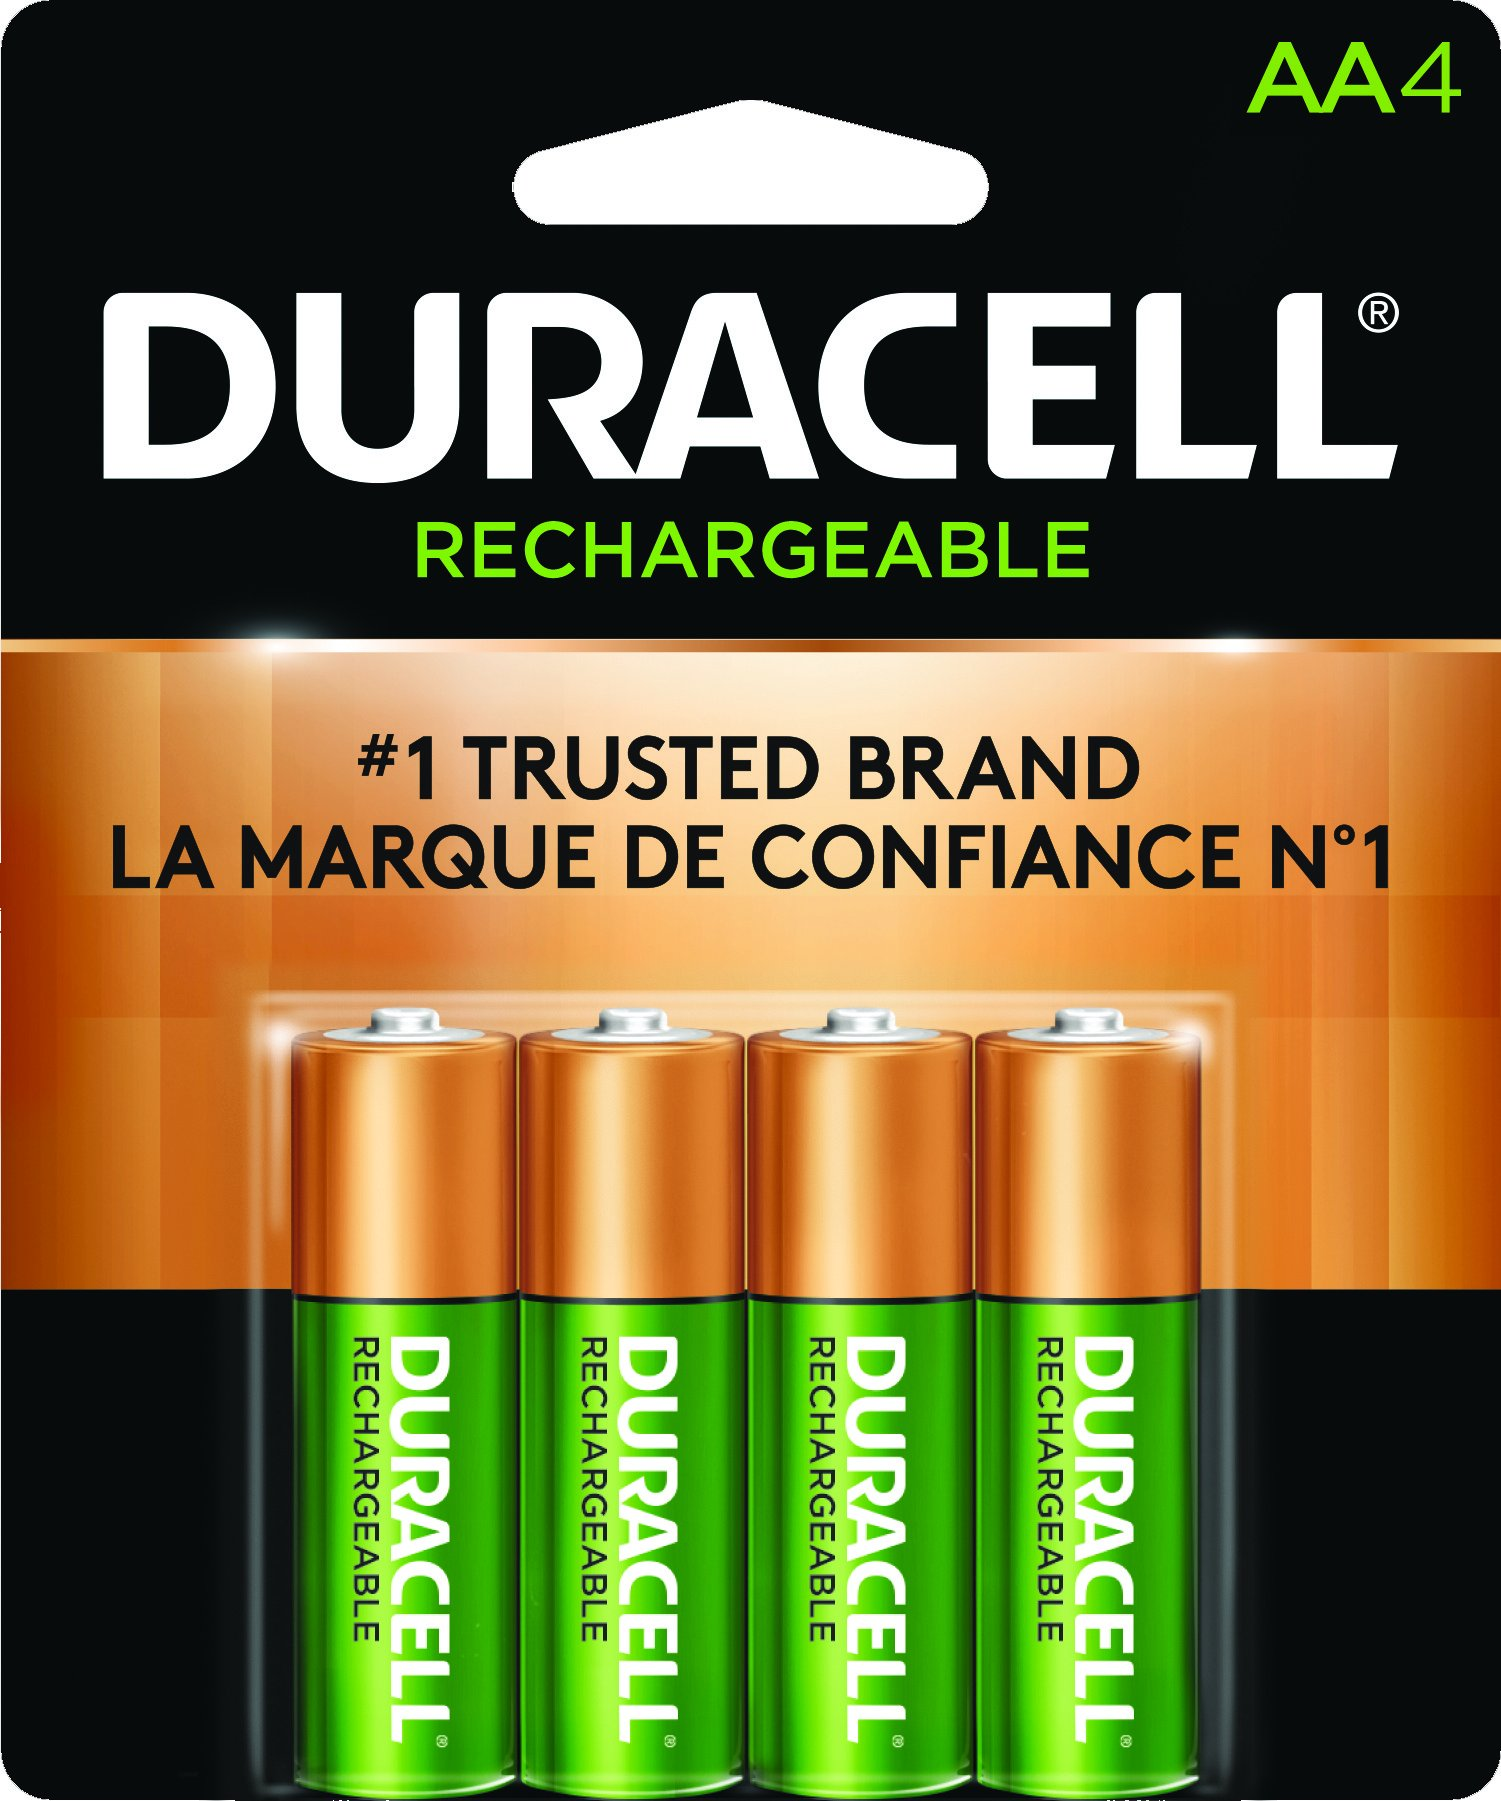 Accu Rechargeable Cheap Duracell Rechargeable Accu Find Duracell Rechargeable Accu